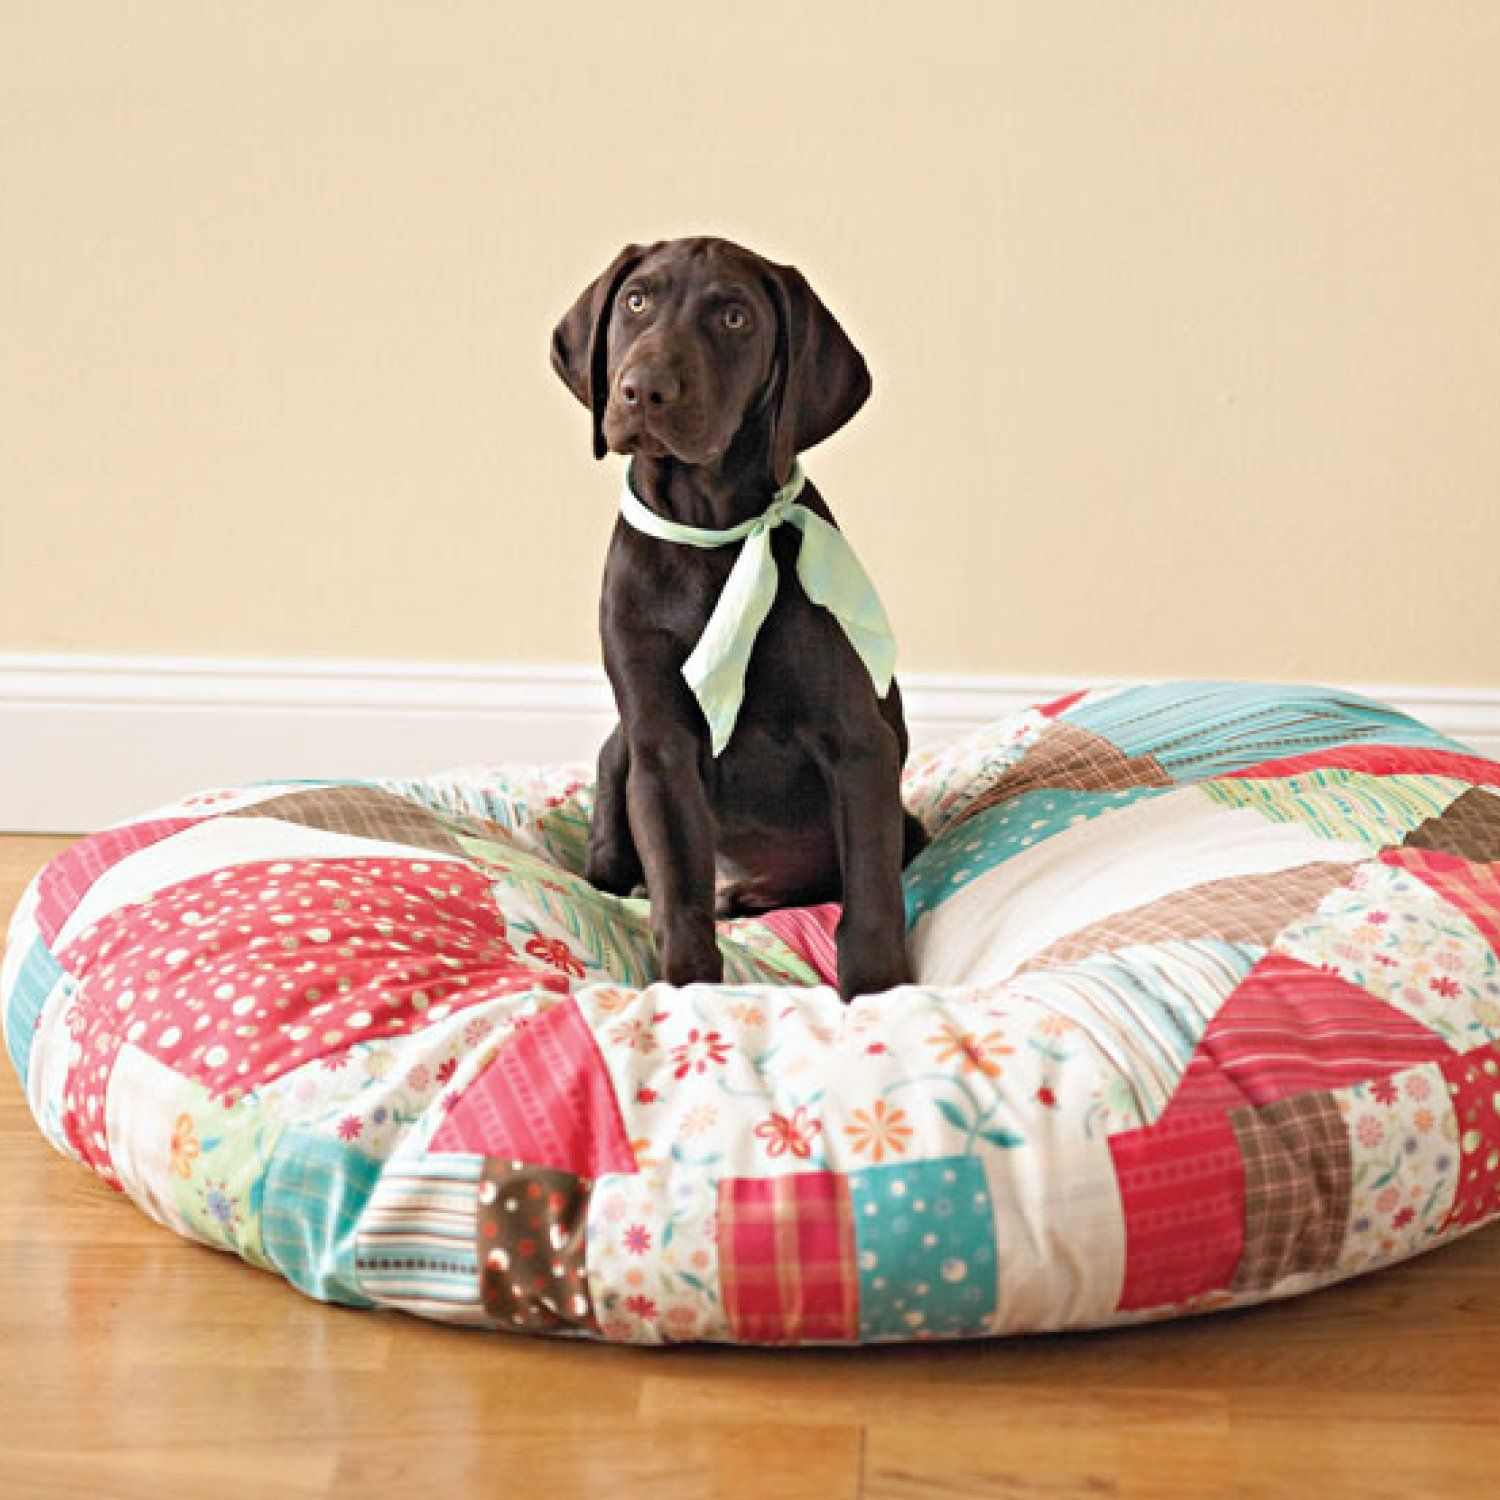 Creature Comfort Animal pillows, Quilts, Dog bed